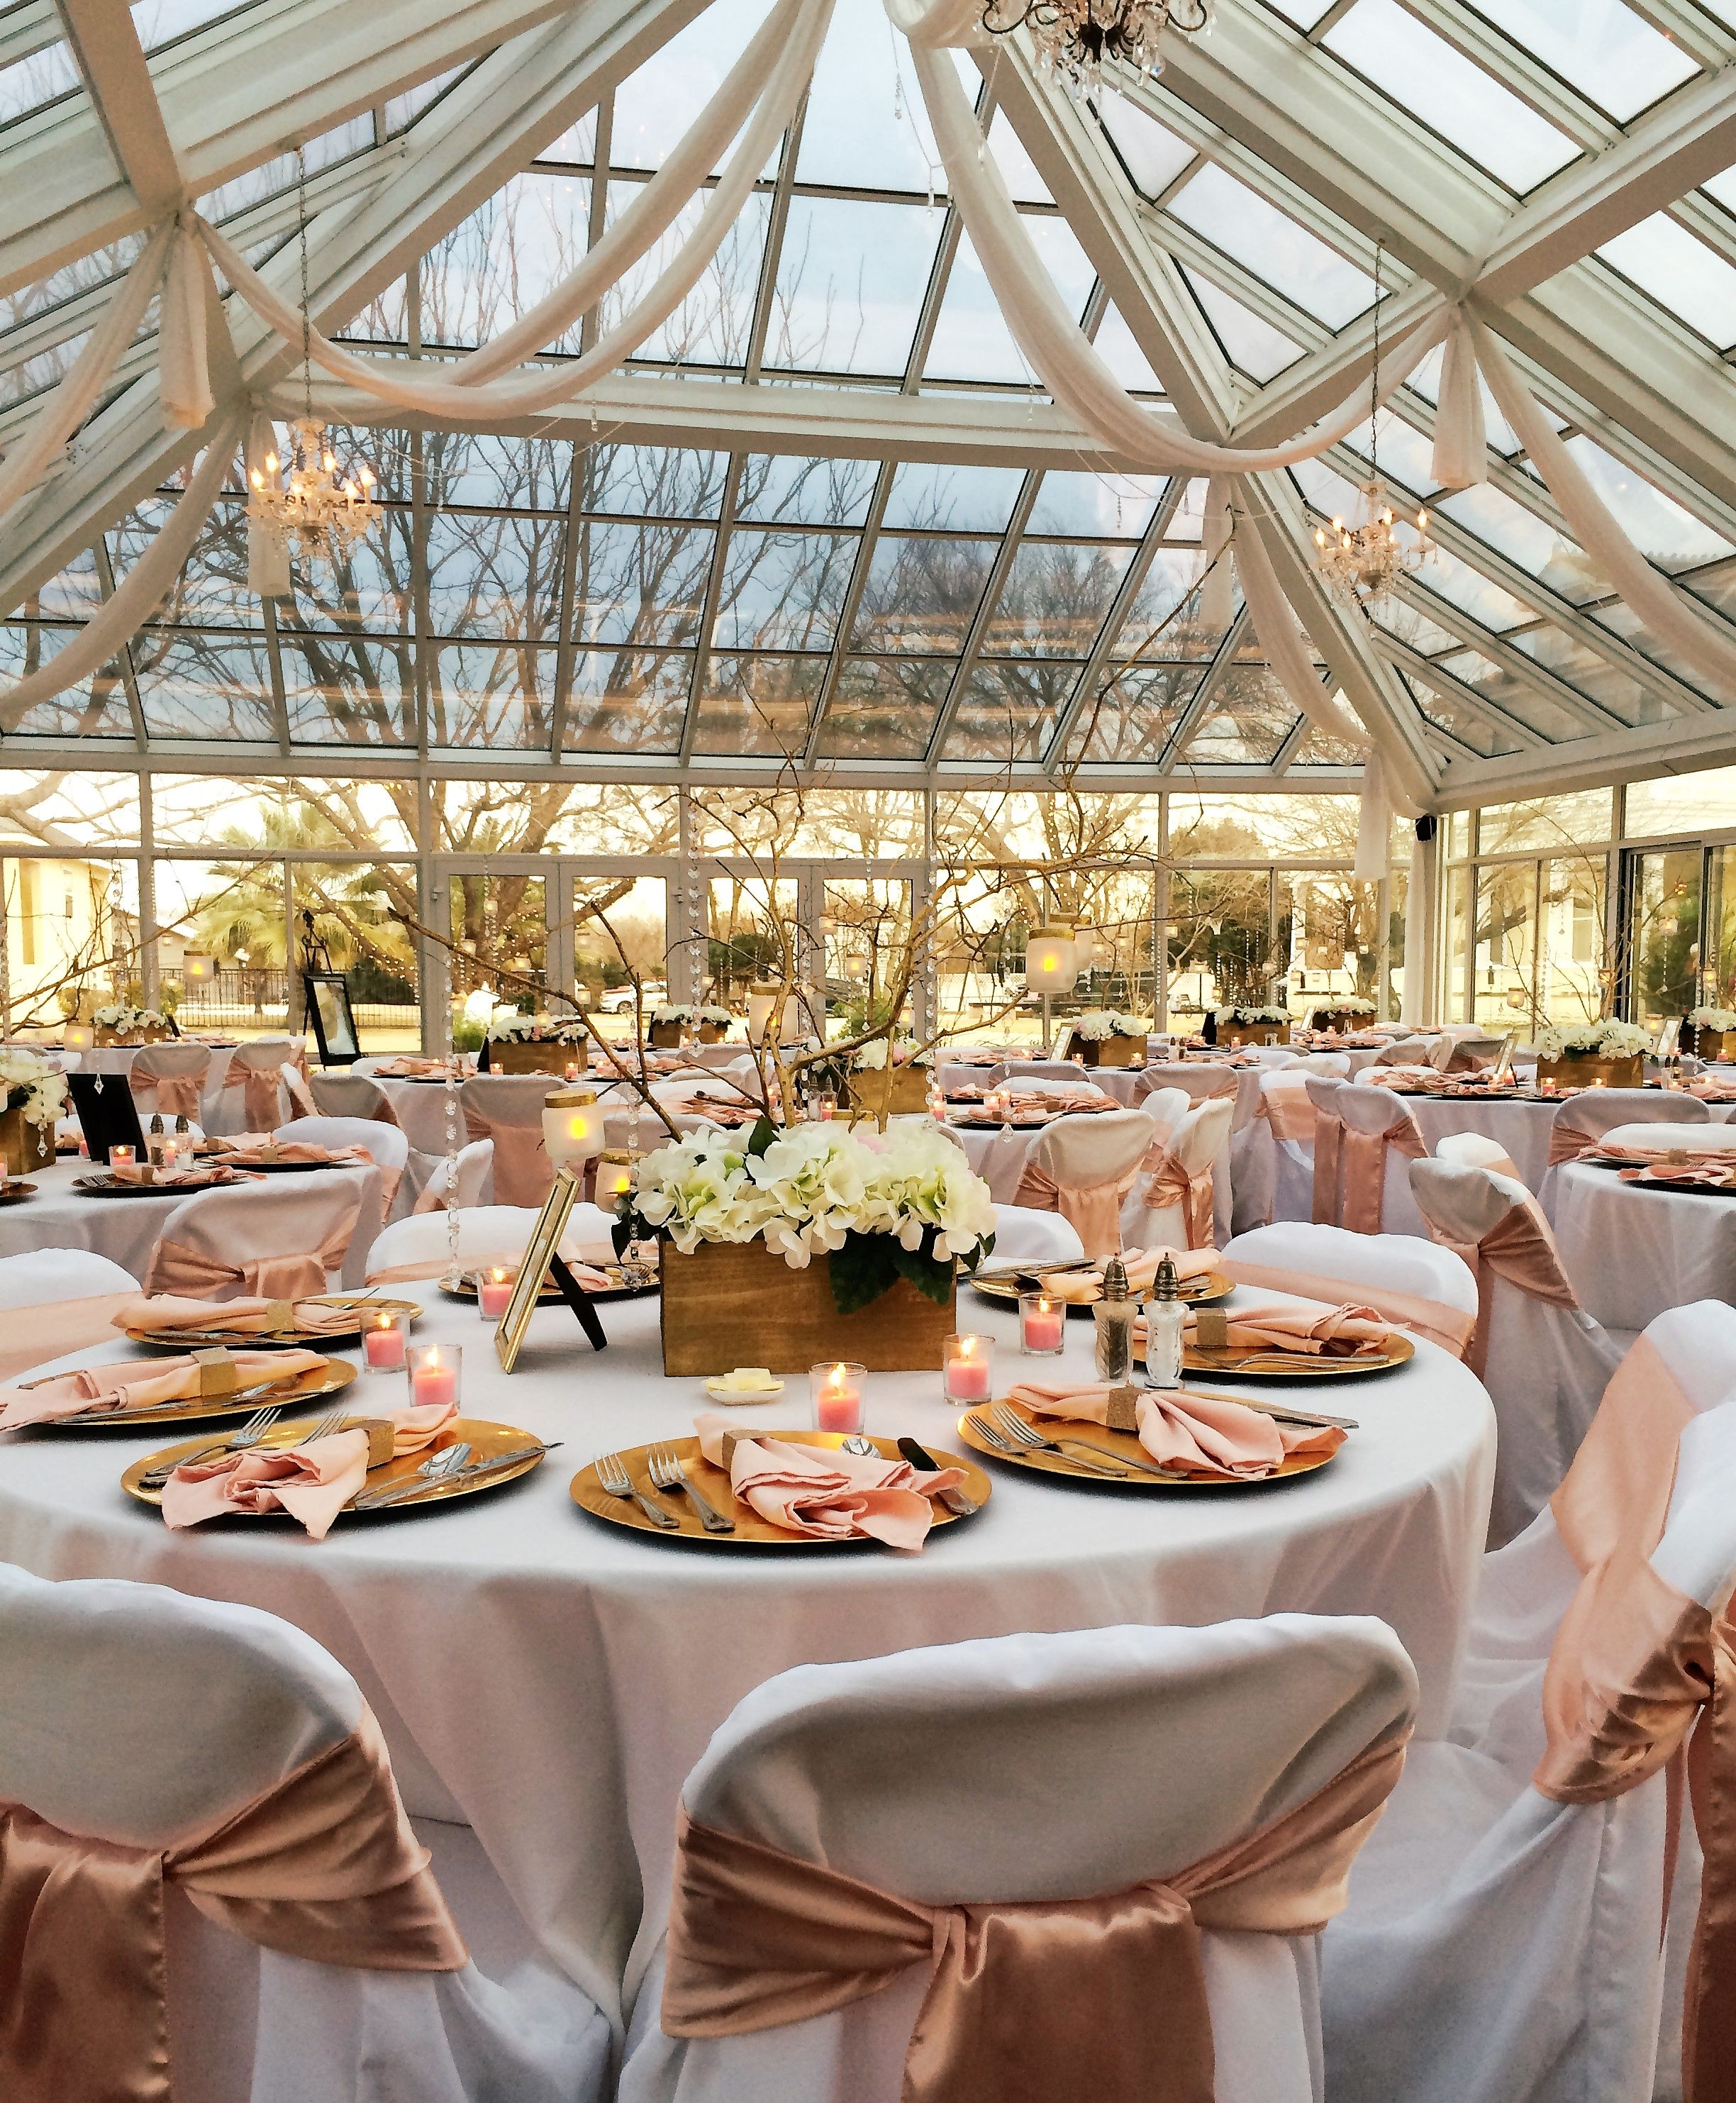 Wedding Places Austin Tx: The Crystal Ballroom Is An Amazing Venue For Any Reception